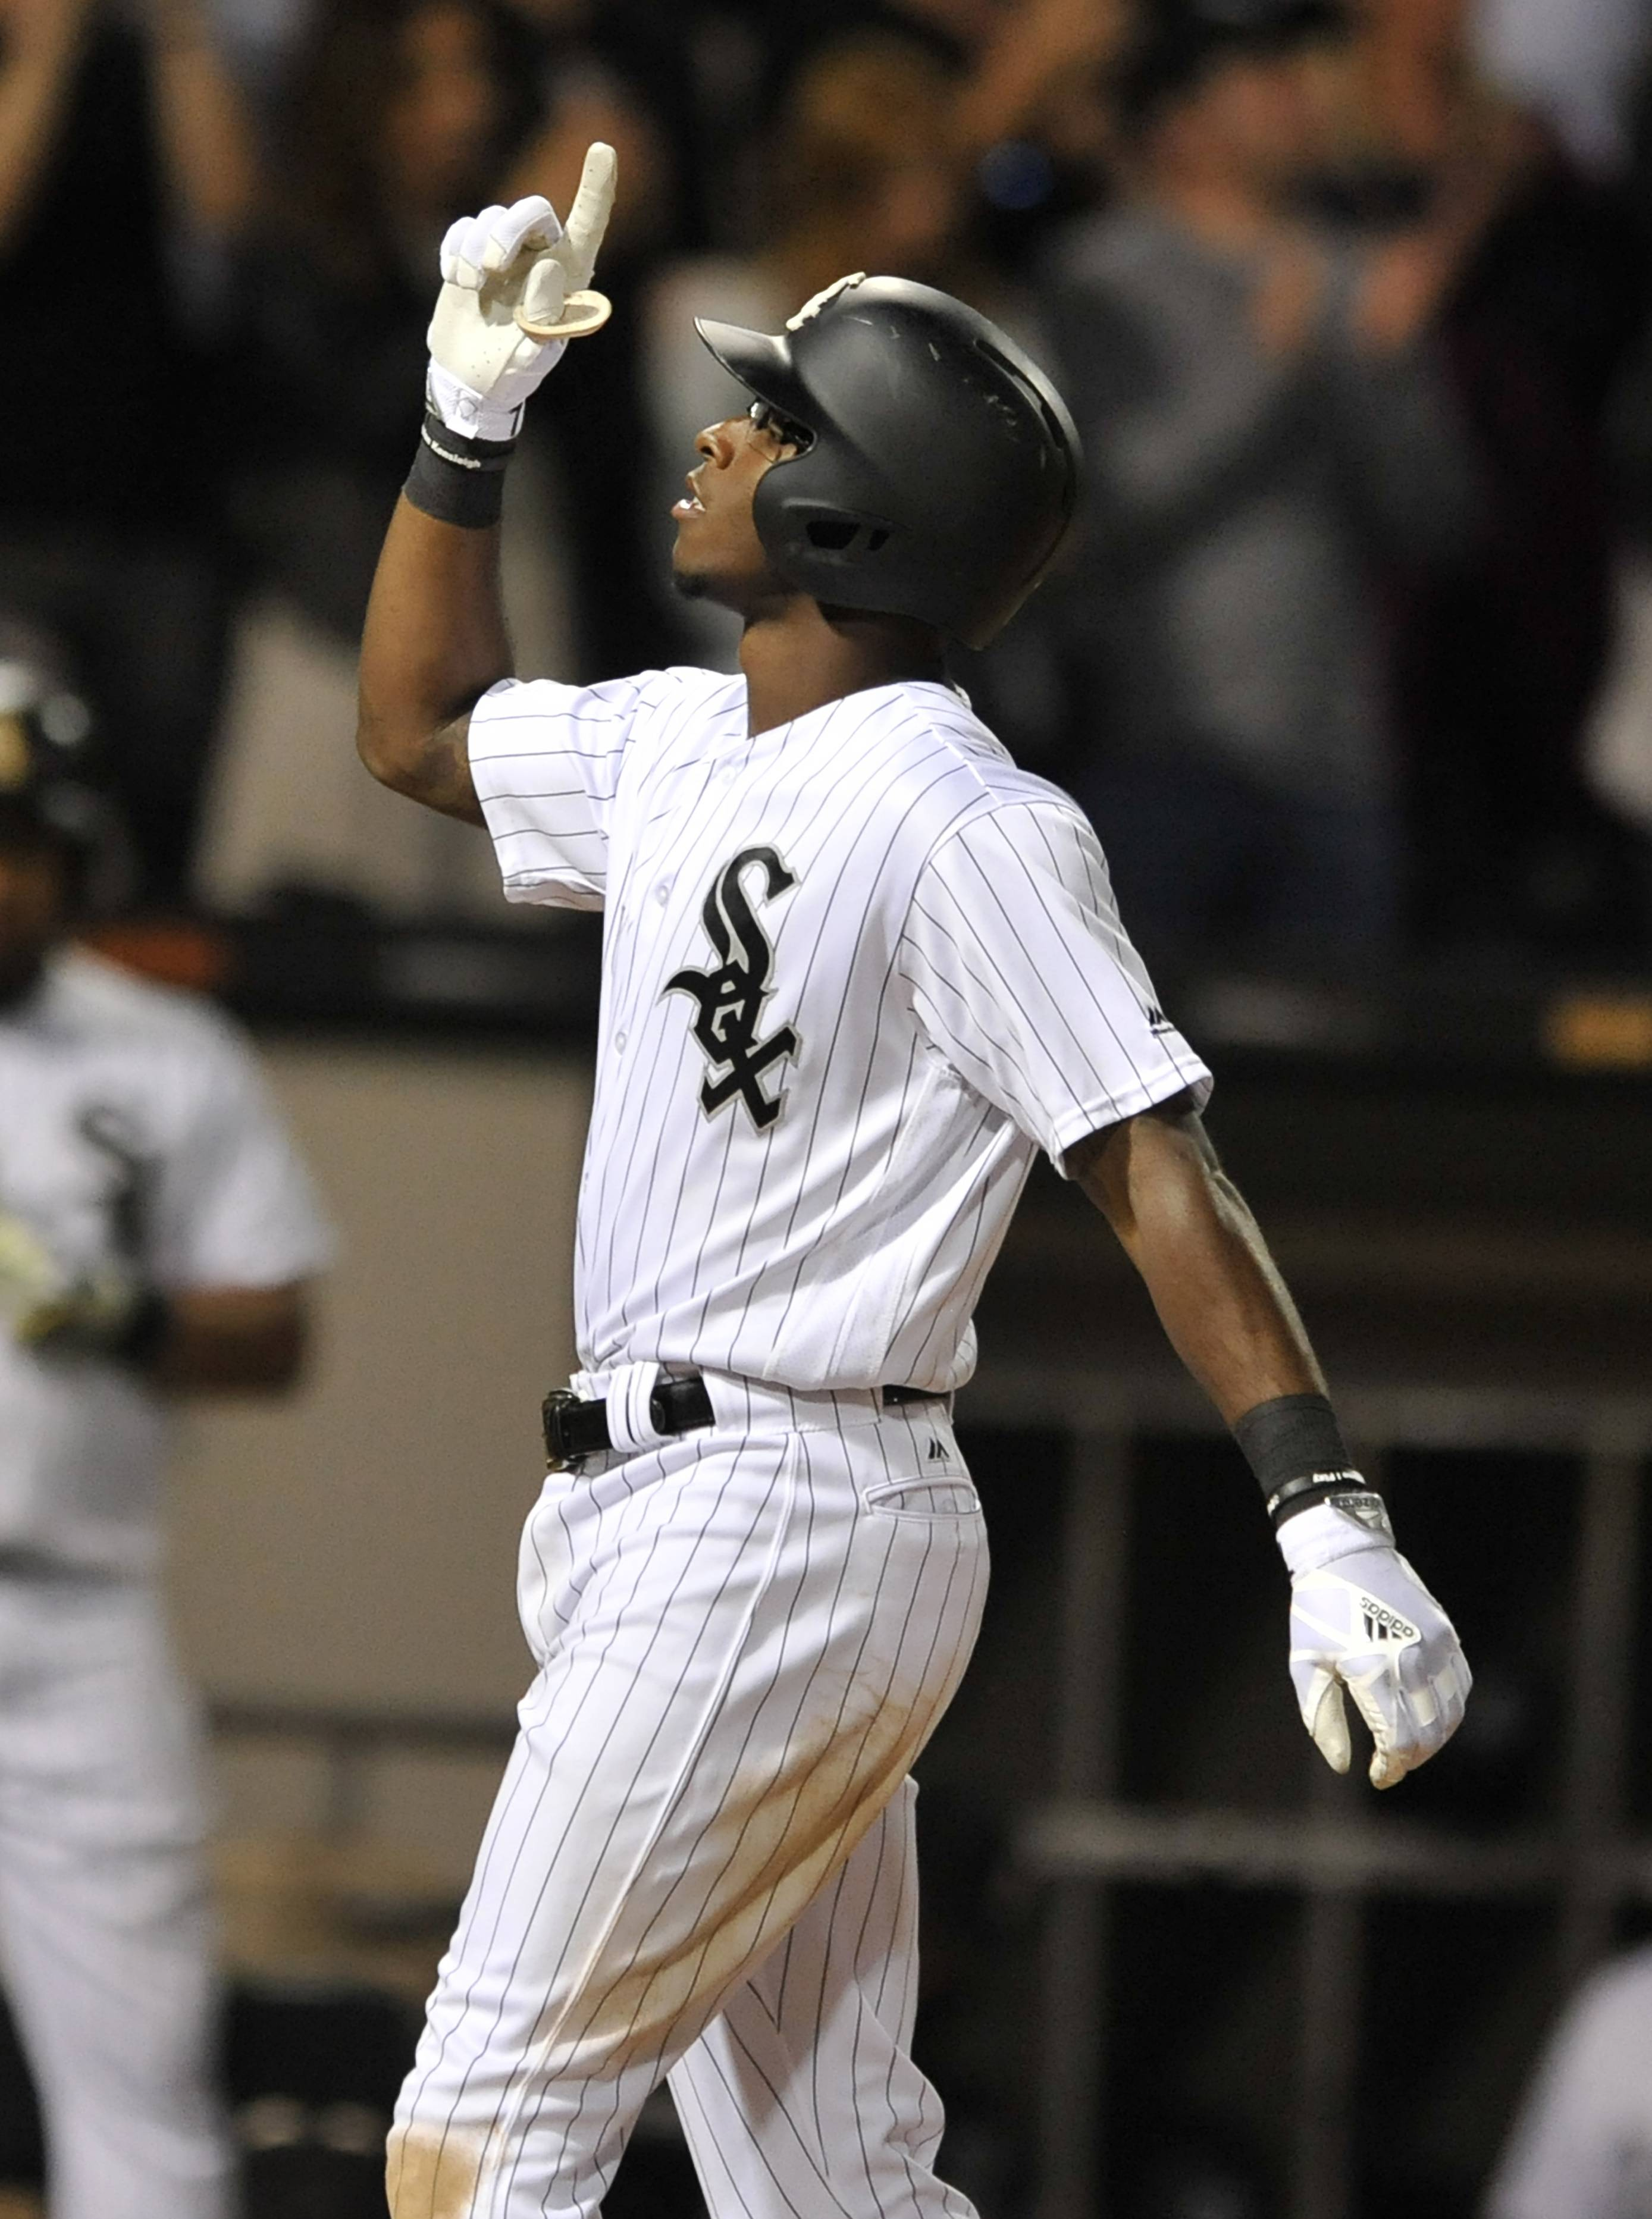 Chicago White Sox's Tim Anderson celebrates at home plate after hitting a three-run home run during the ninth inning of a baseball game against the New York Yankees, Monday, June 26, 2017, in Chicago. New York won 6-5. (AP Photo/Paul Beaty)